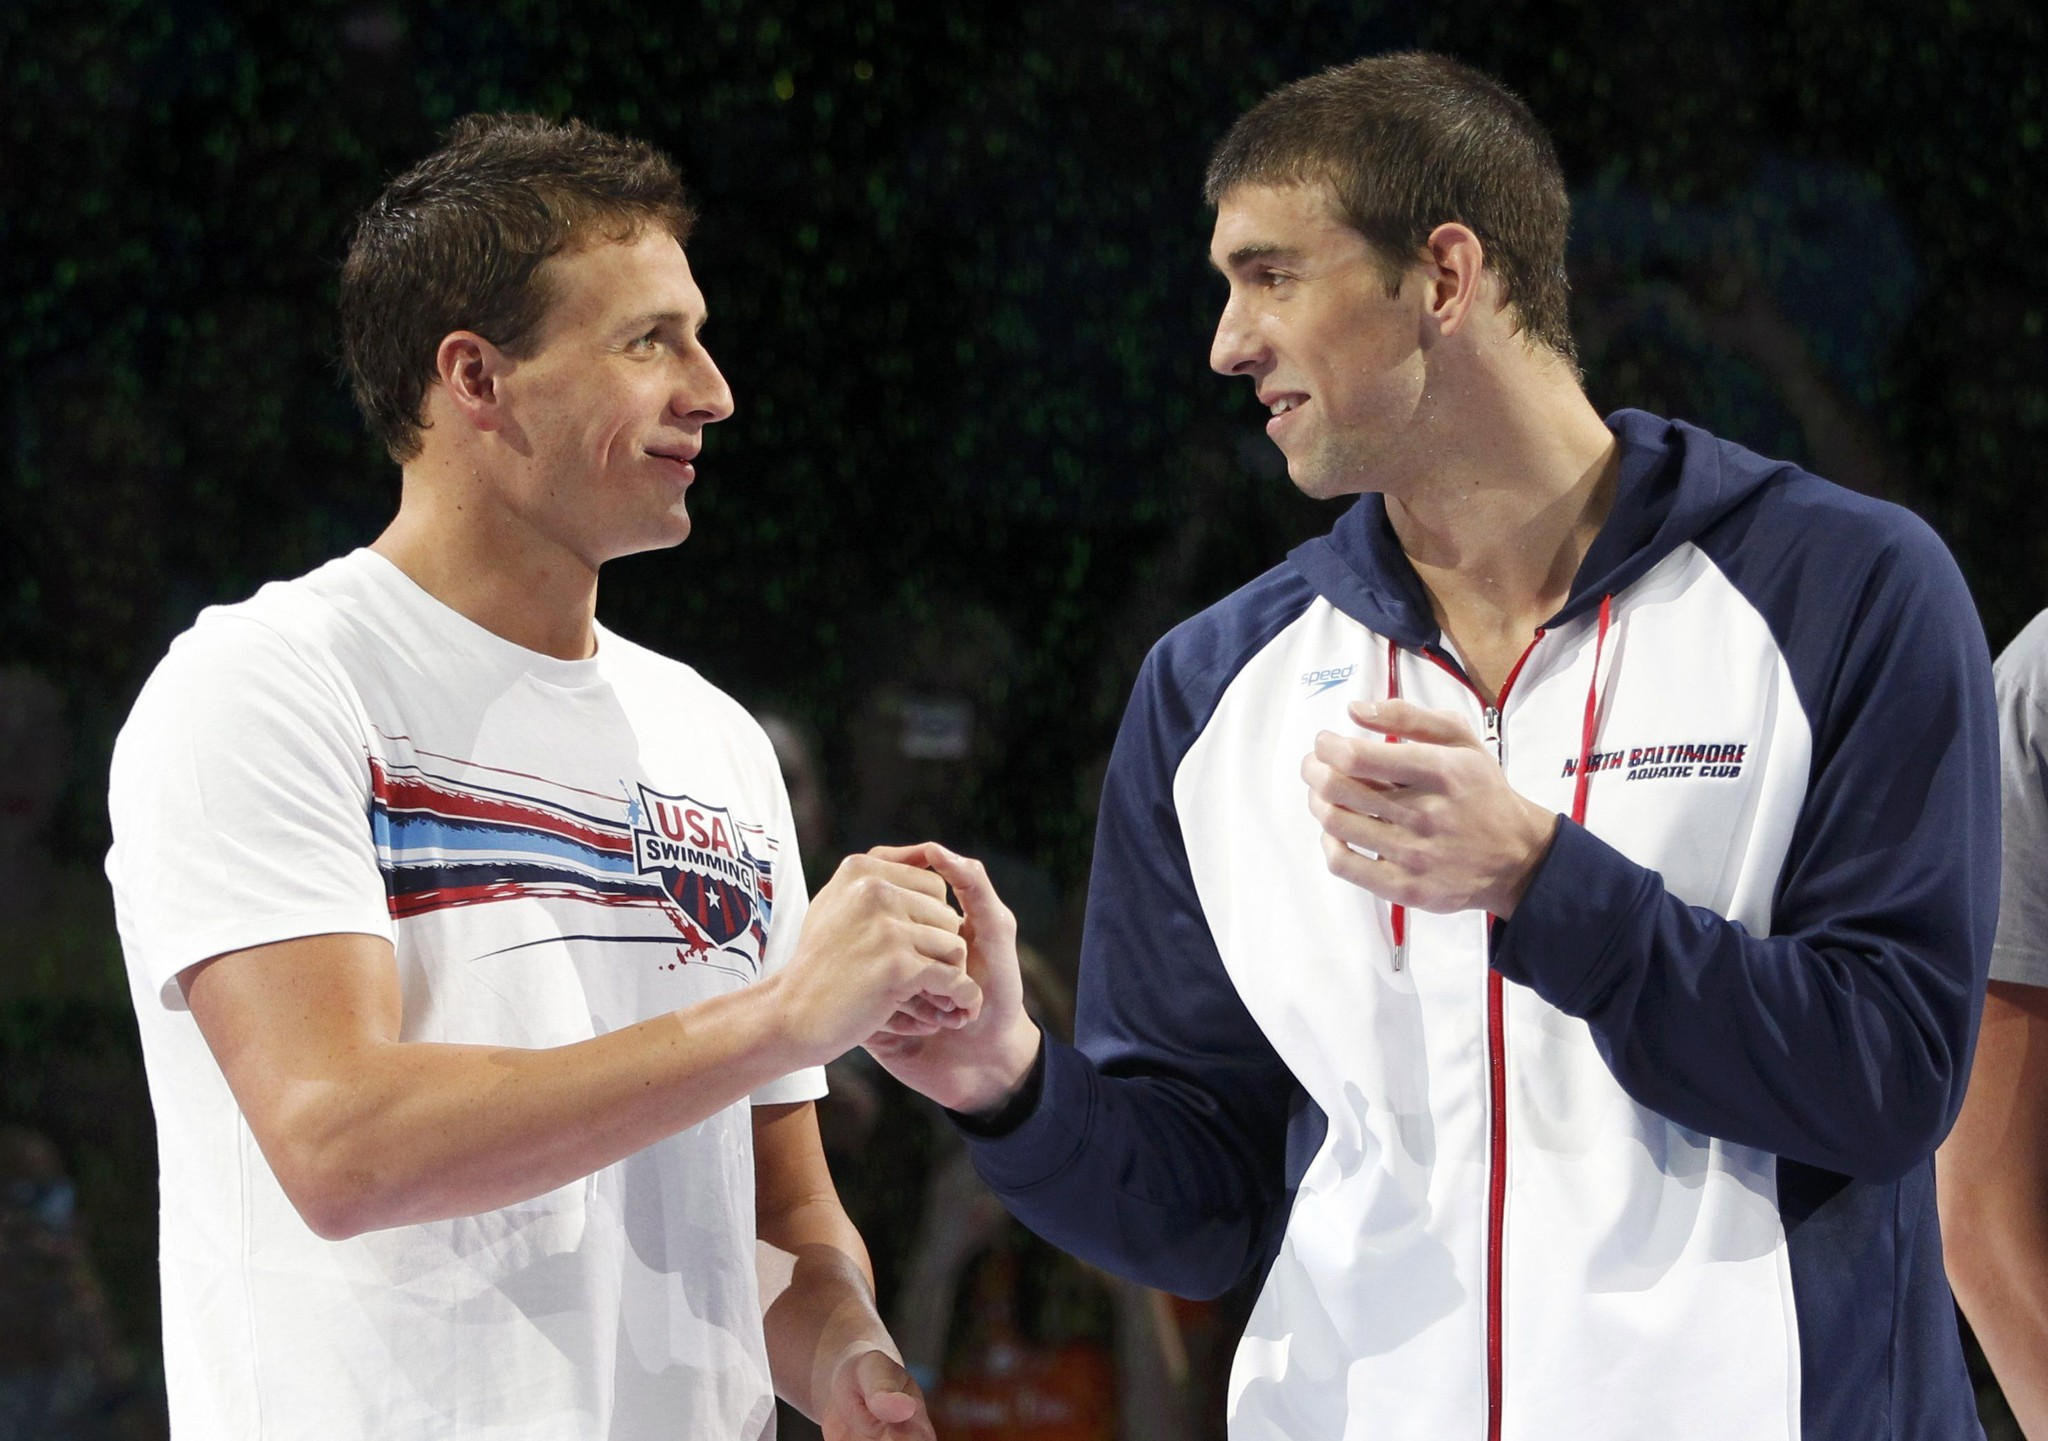 Ryan Lochte shakes hands with Michael Phelps before the medal ceremony for the men's 200 meter freestyle final during the U.S. Olympic swimming trials.